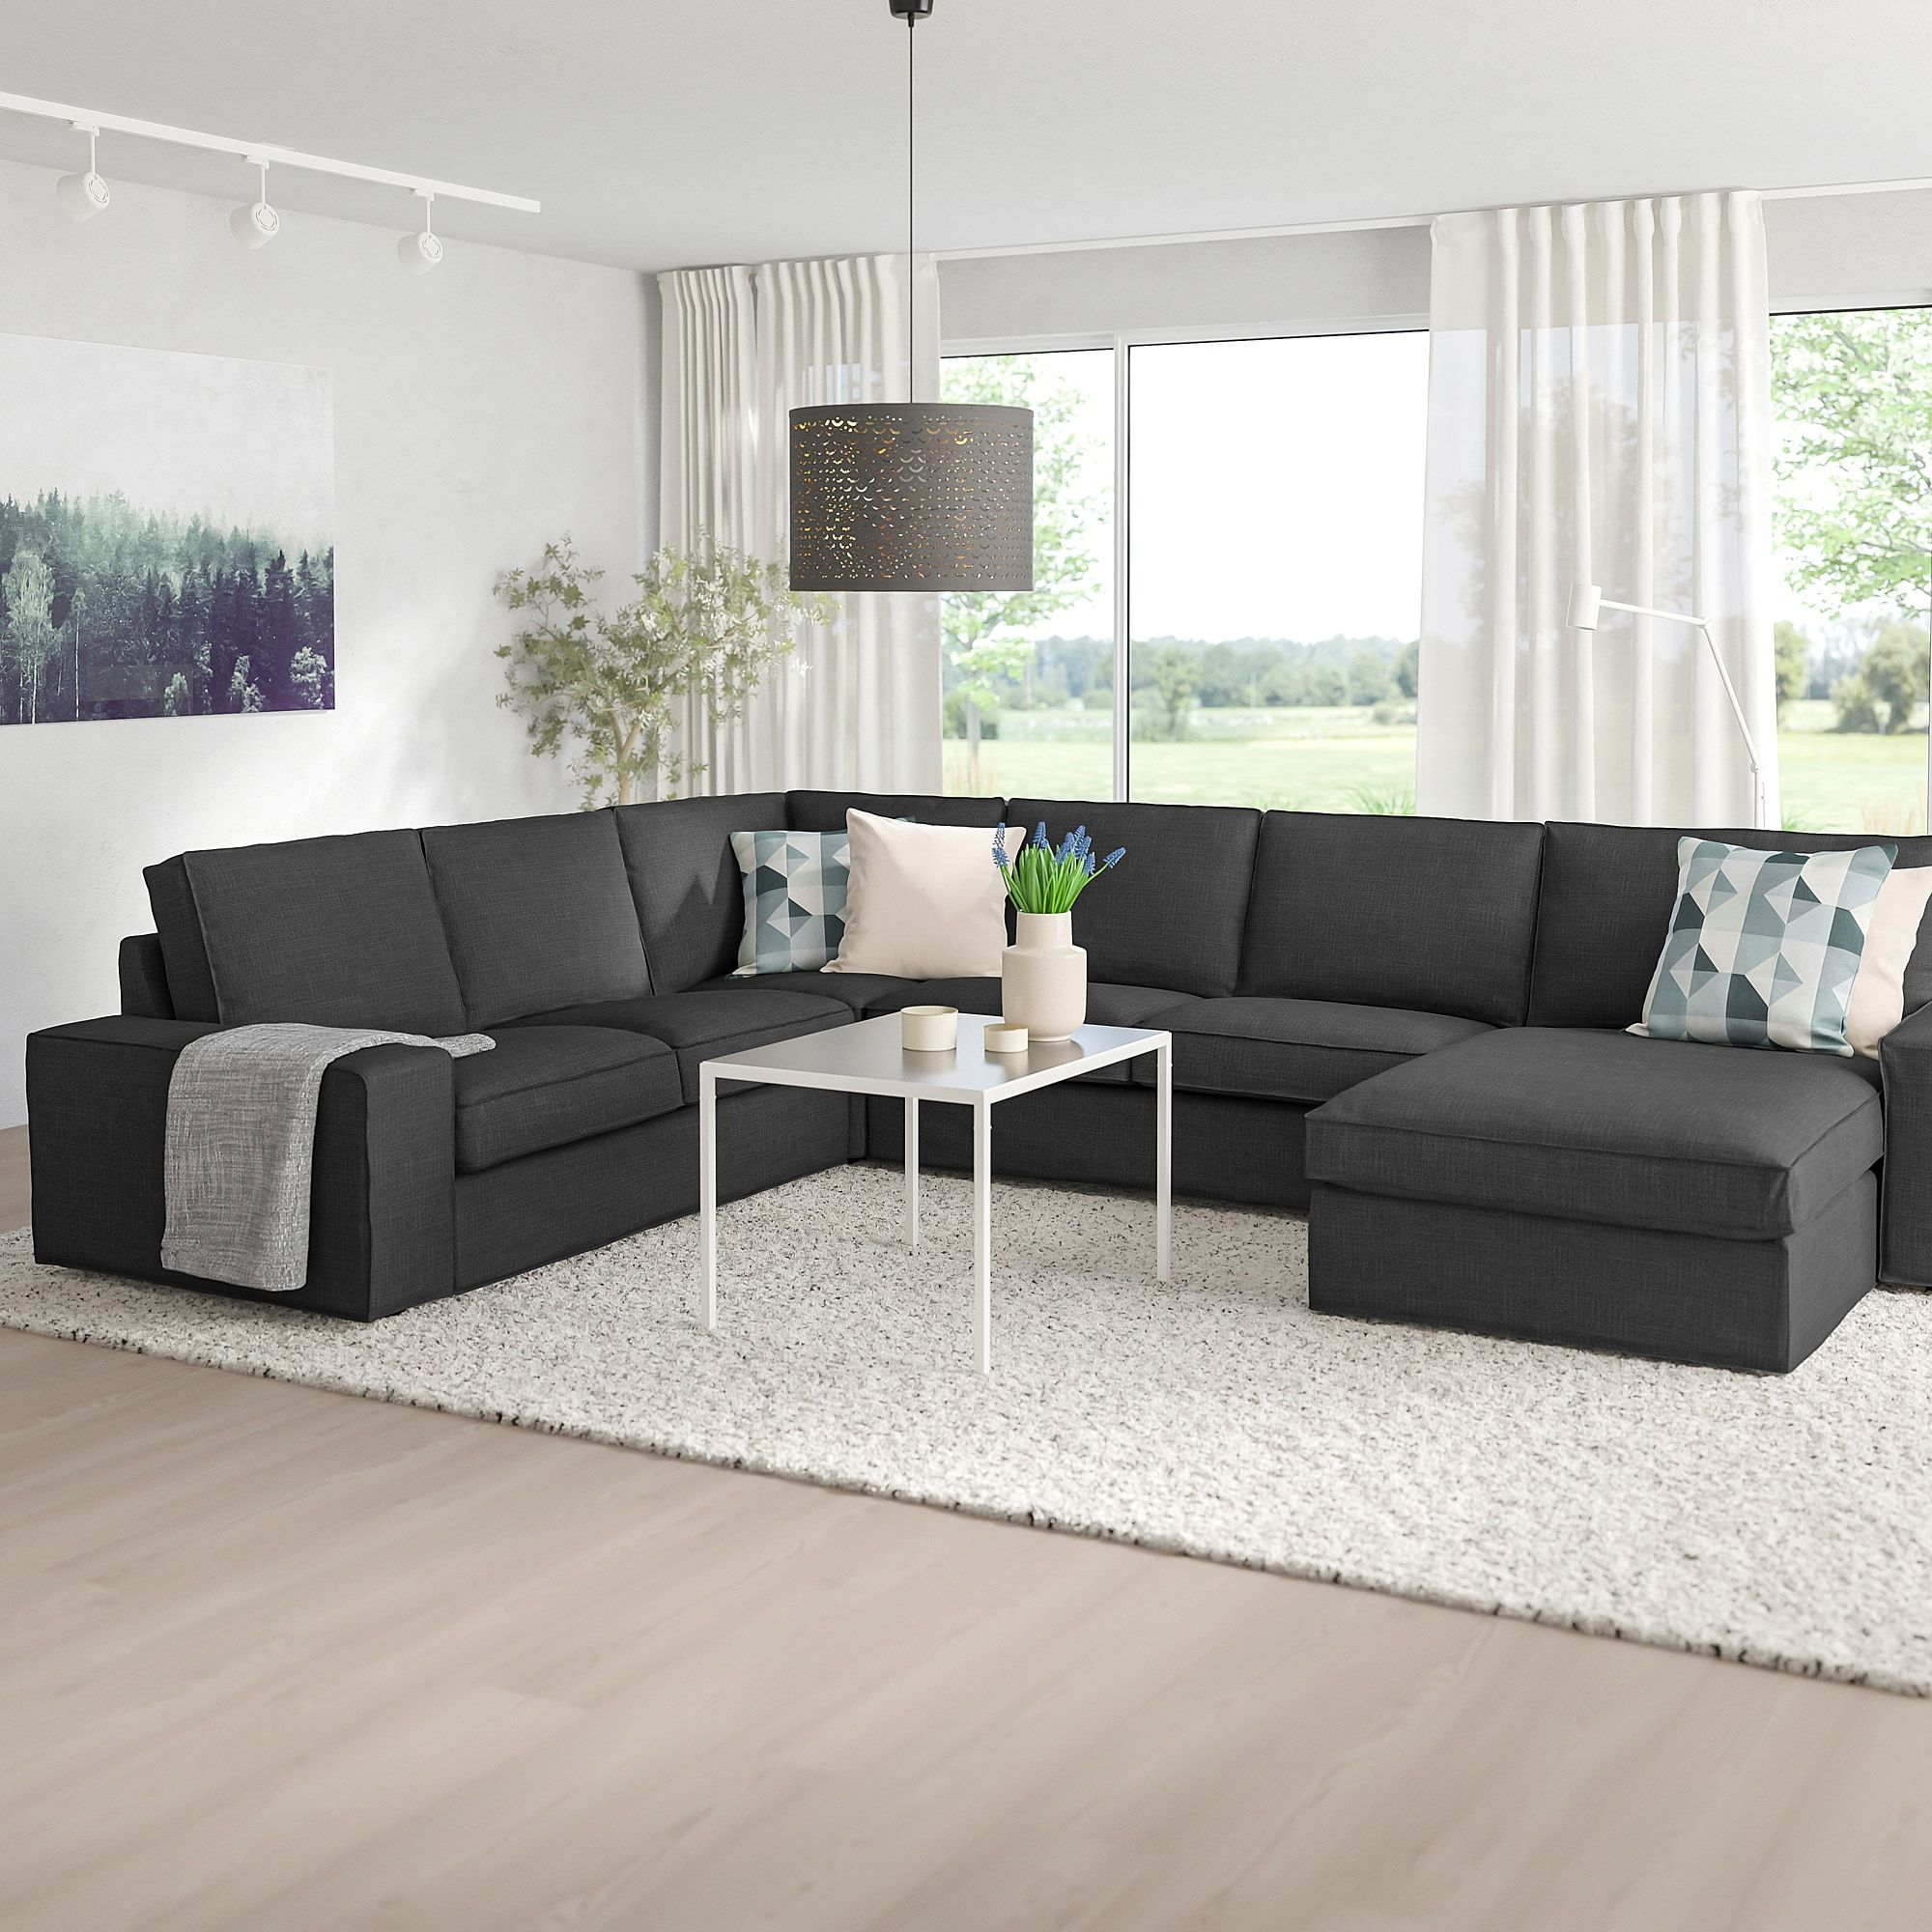 KIVIK Sectional, 5seat corner, with chaise/Hillared